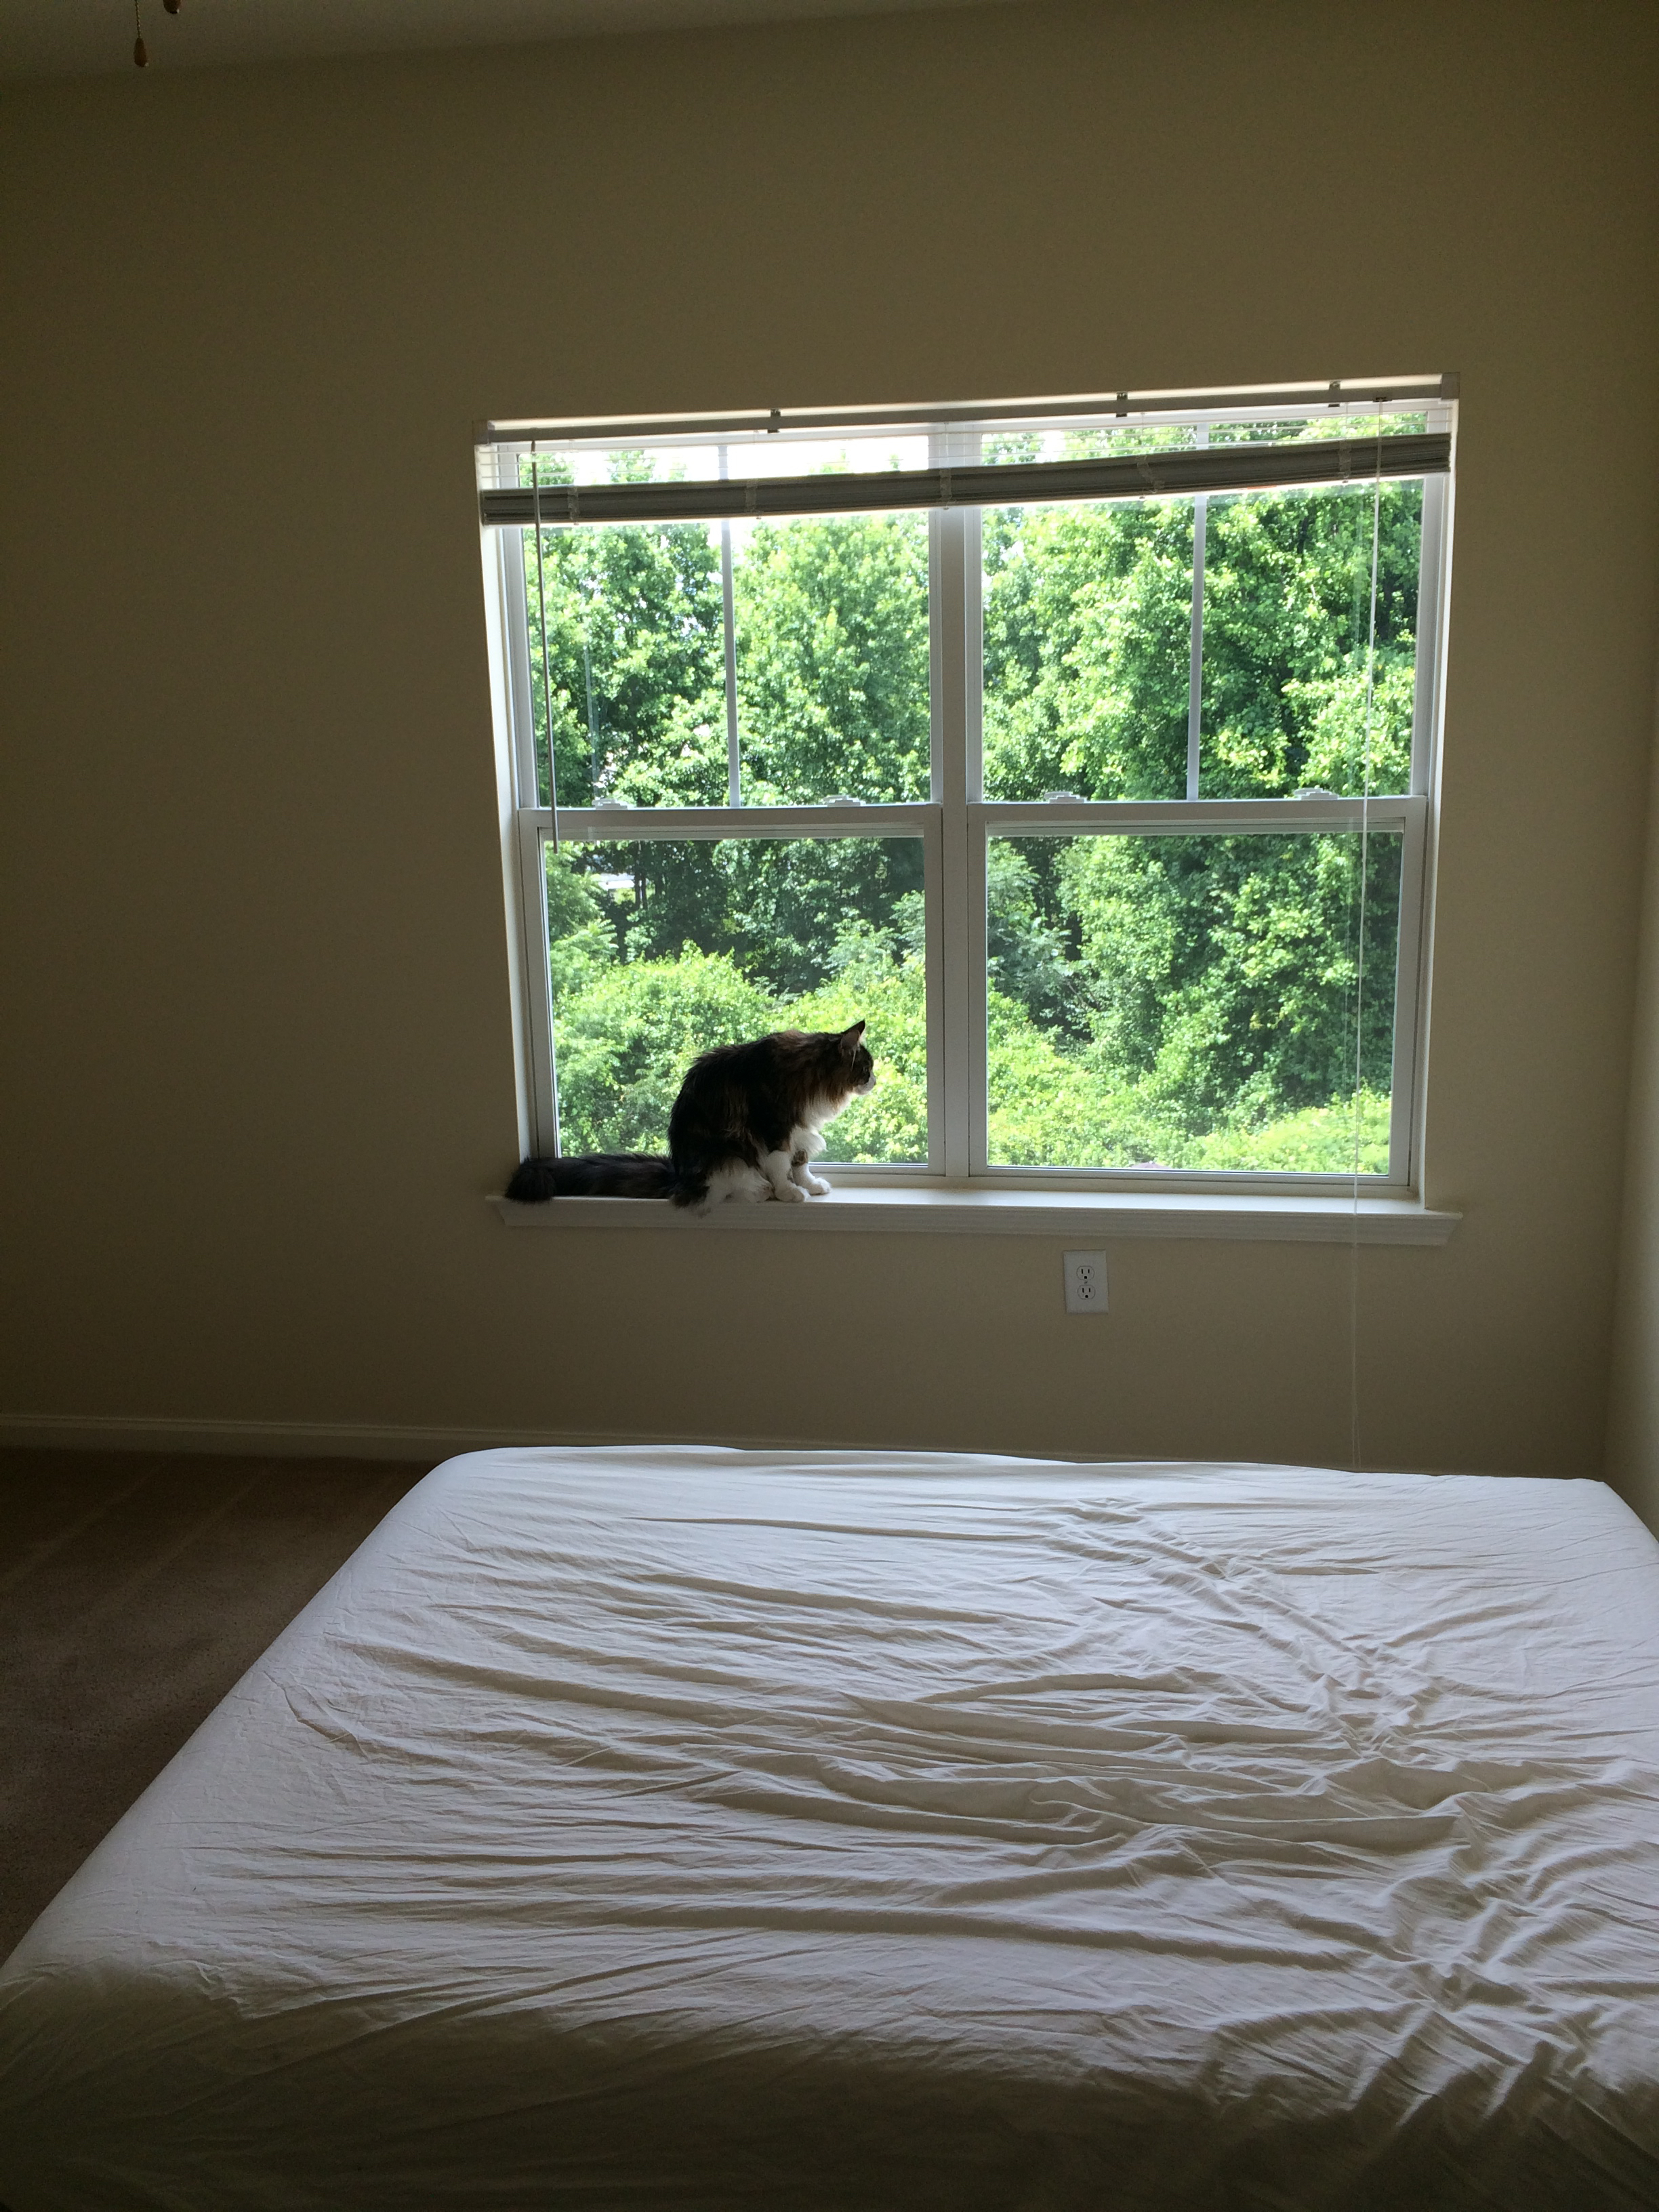 Nugget's favorite place—the window, so he could check out all the babes down at the pool. (Move in day at our favorite apartment in Georgia.)